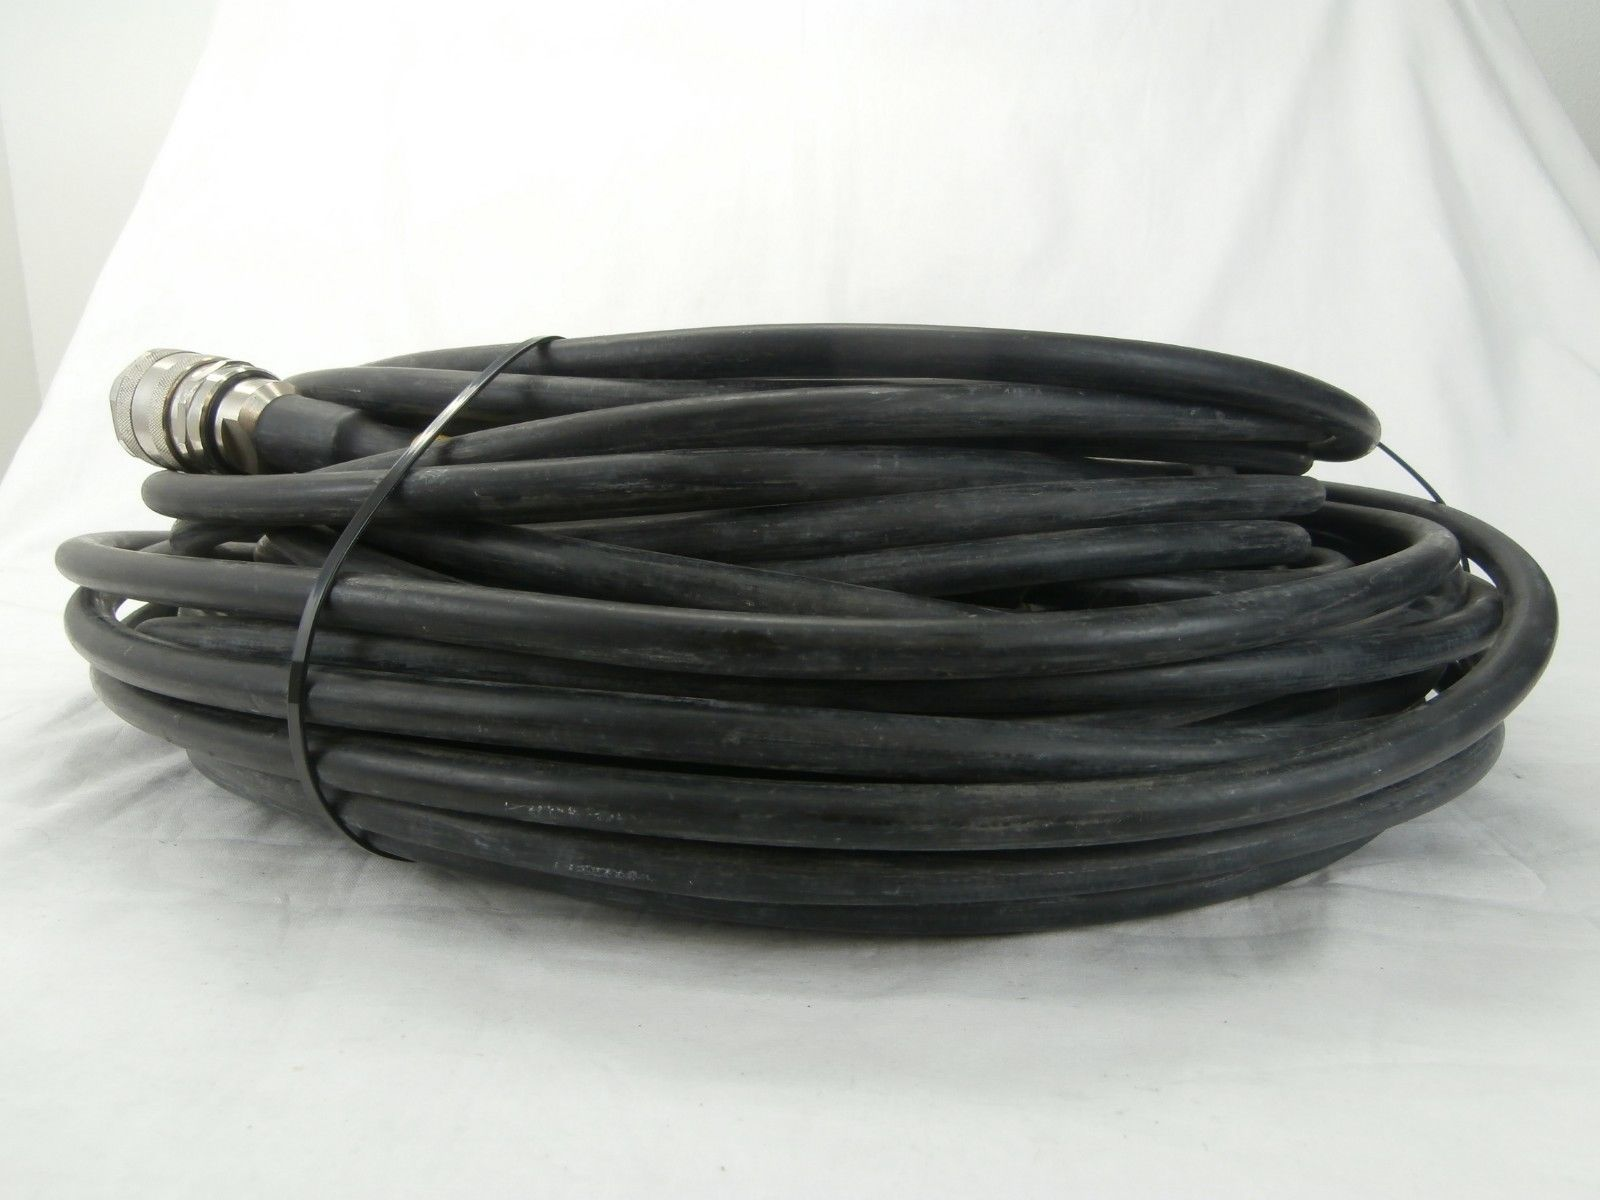 AMAT Applied Materials 0620-00516 RF Cable Top Generator to Match 150 Foot Used